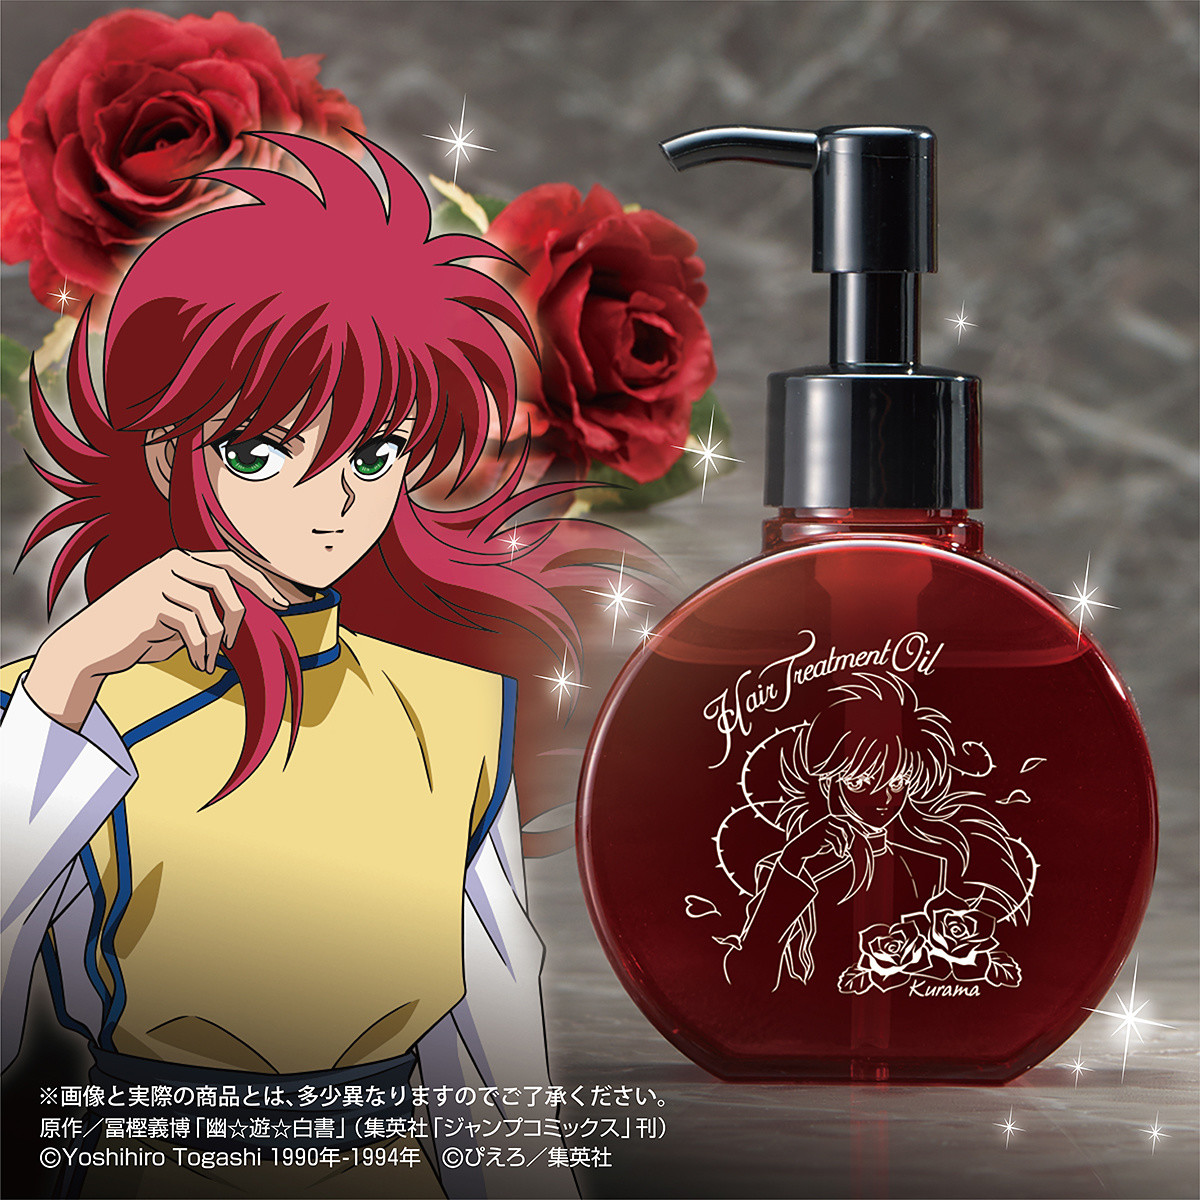 Yu Yu Hakusho Kurama S Hair Treatment Oil Up For Pre Order